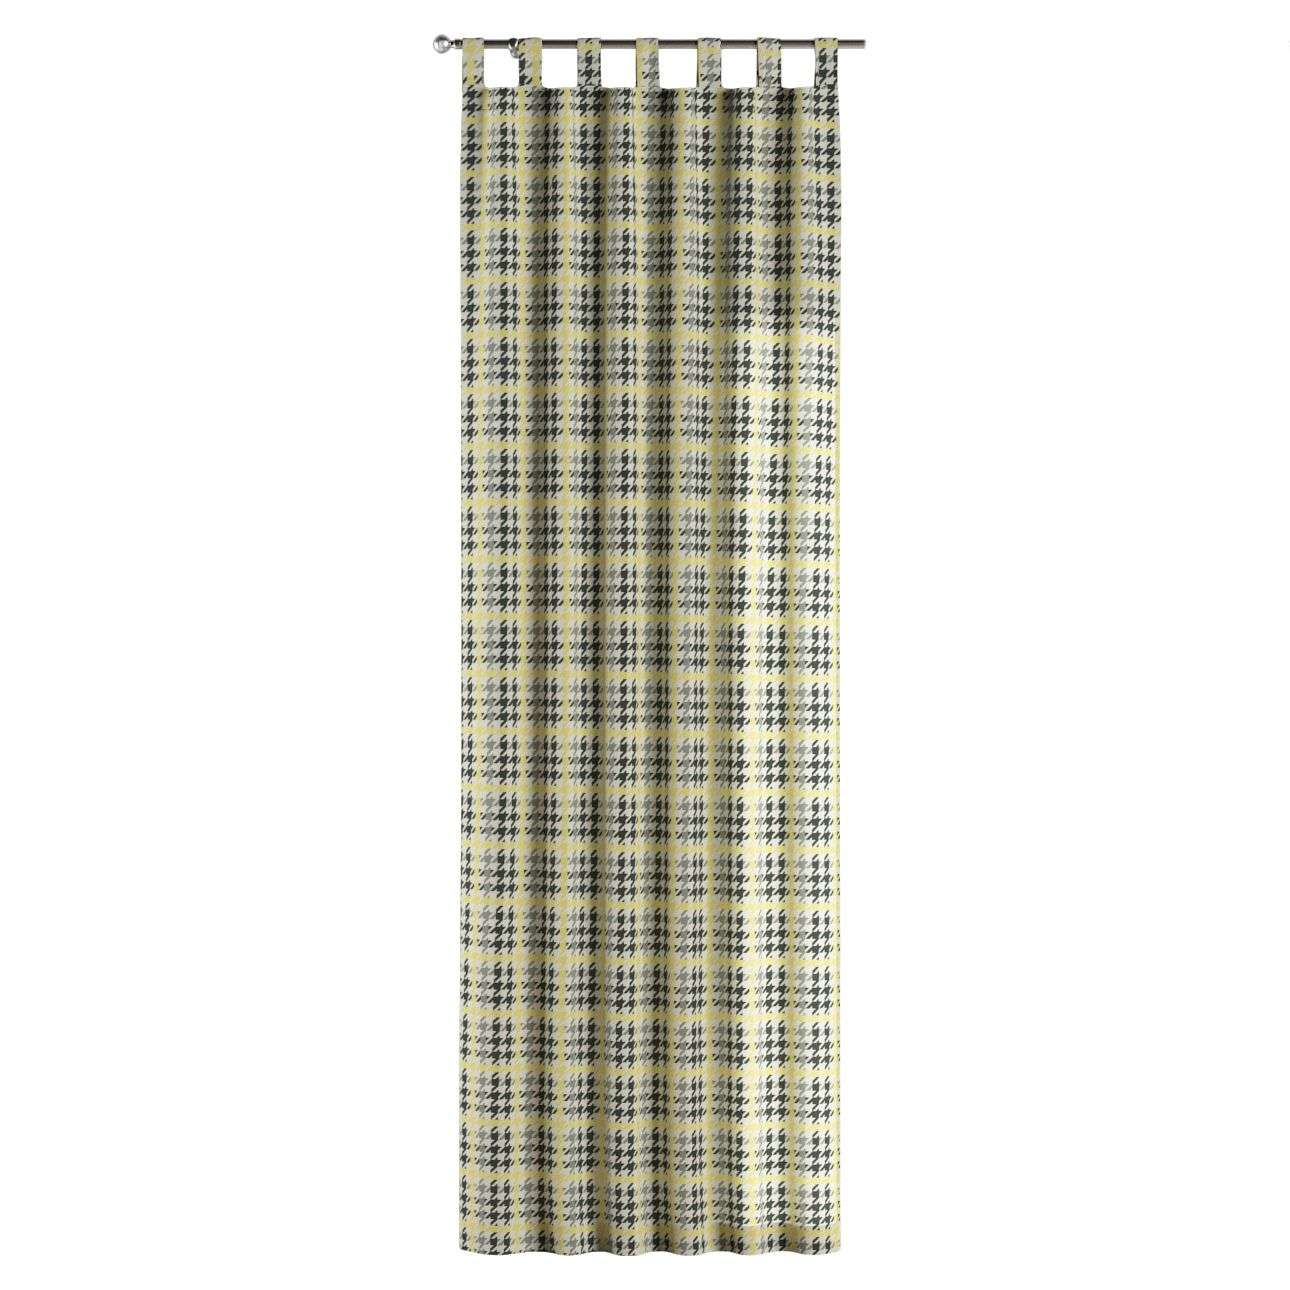 Tab top curtains 130 × 260 cm (51 × 102 inch) in collection Brooklyn, fabric: 137-79